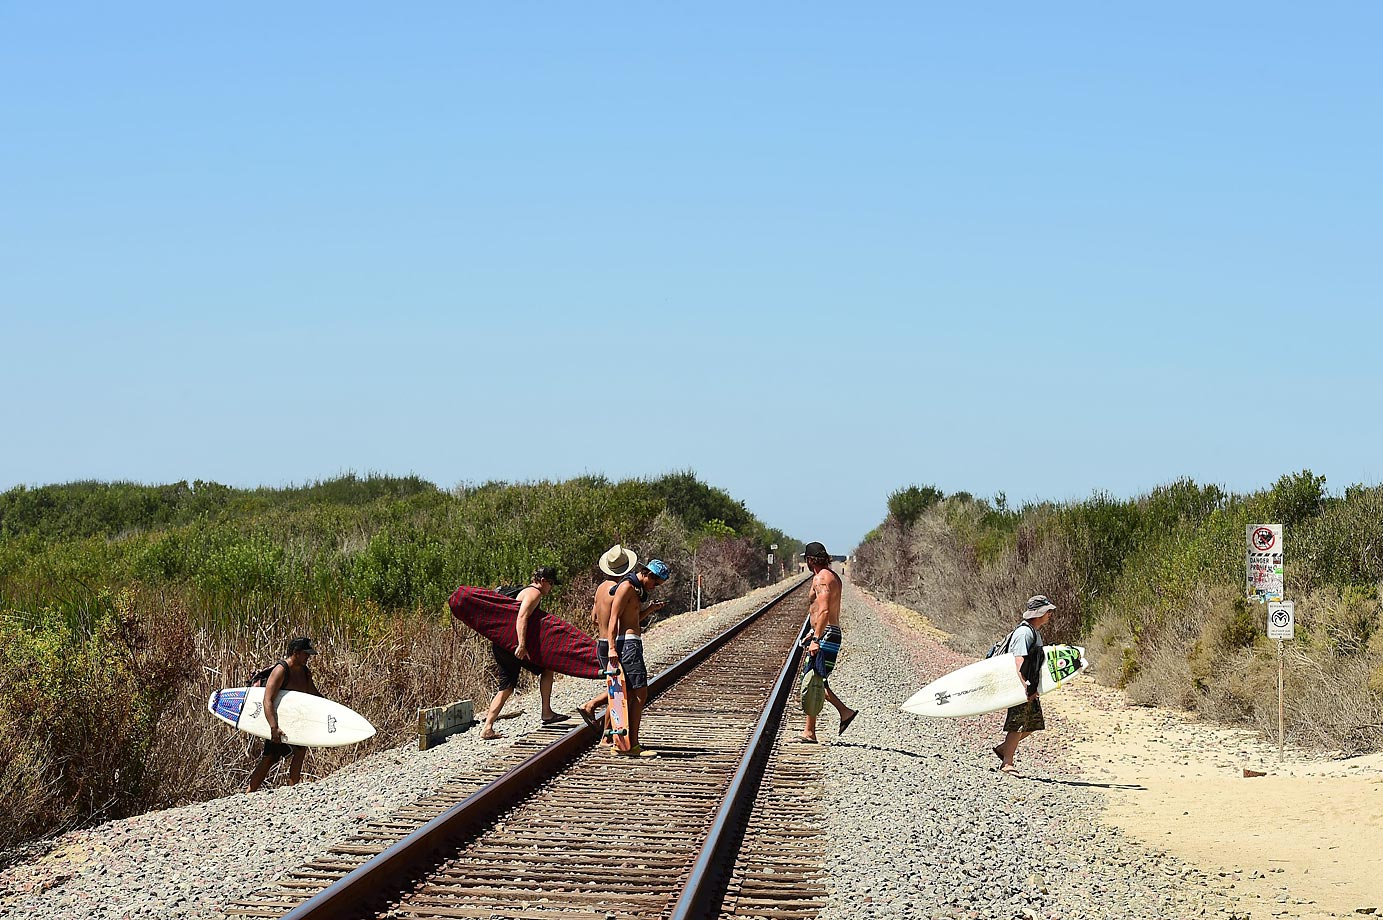 Crossing the tracks to the beach.